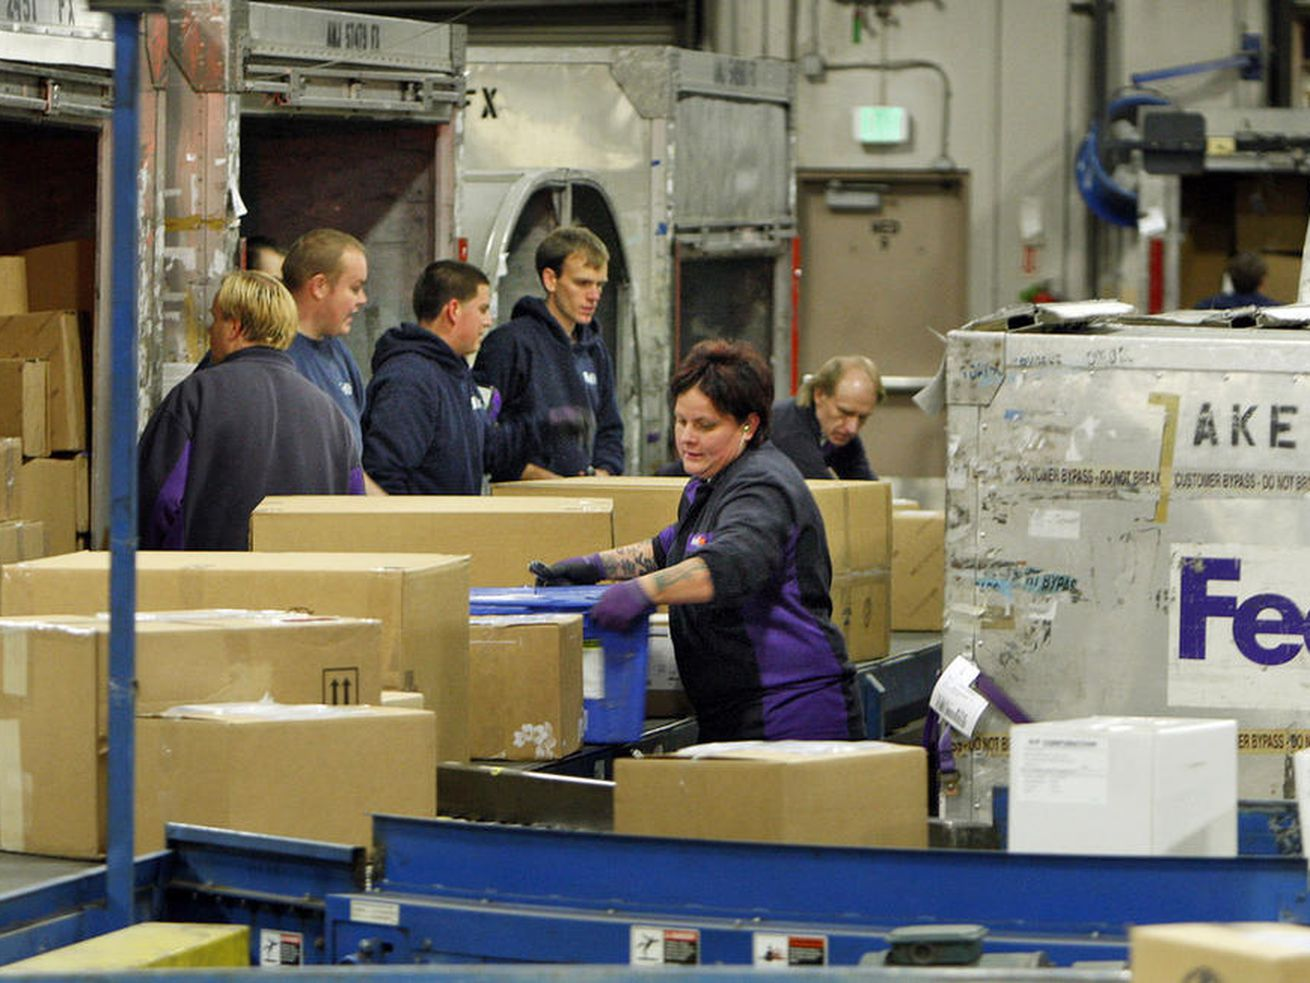 FedEx to add more than 650 seasonal positions in Salt Lake City